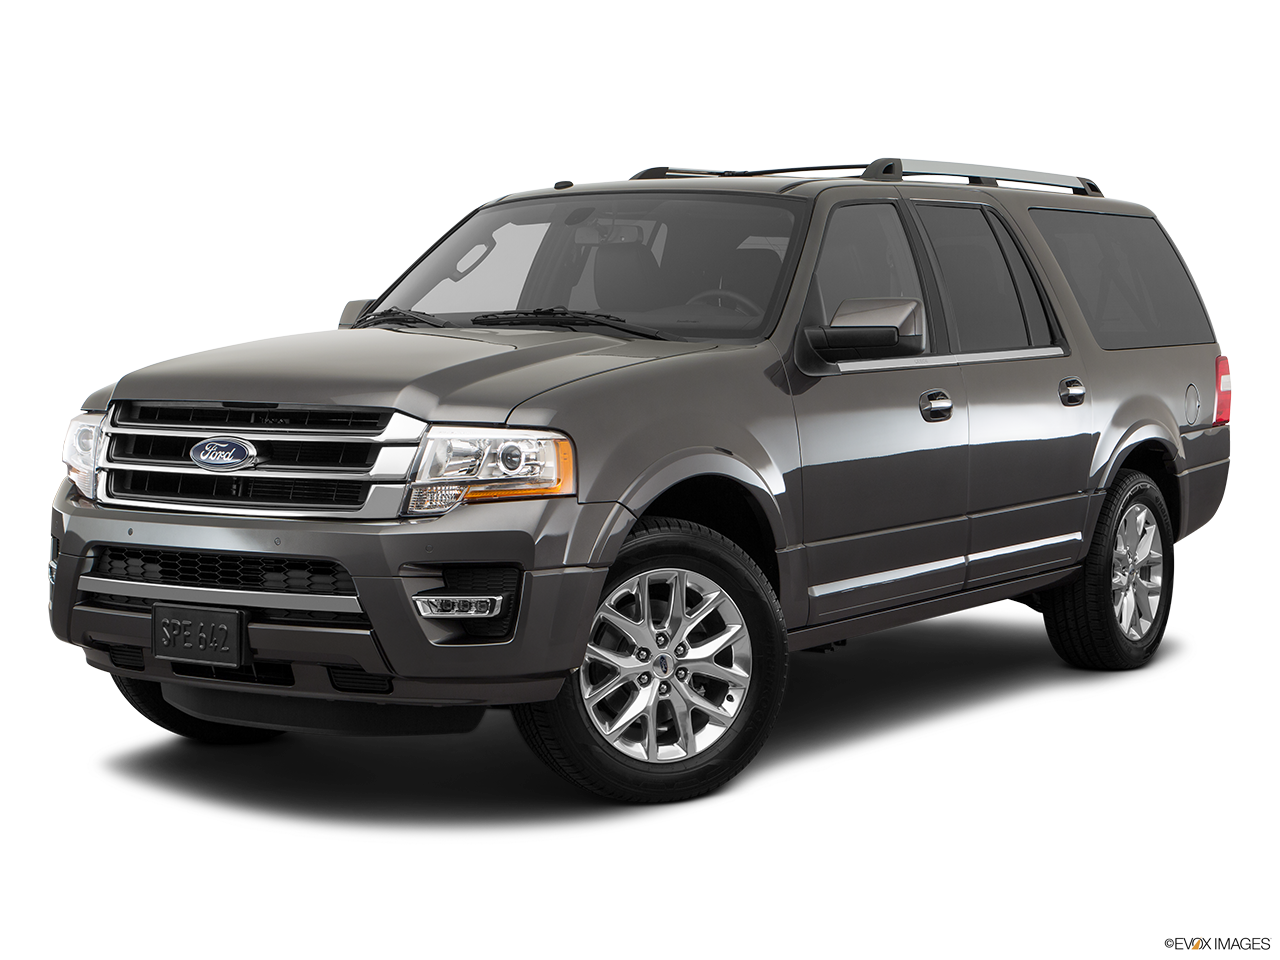 Test Drive A 2017 Ford Expedition at Galpin Ford in Los Angeles